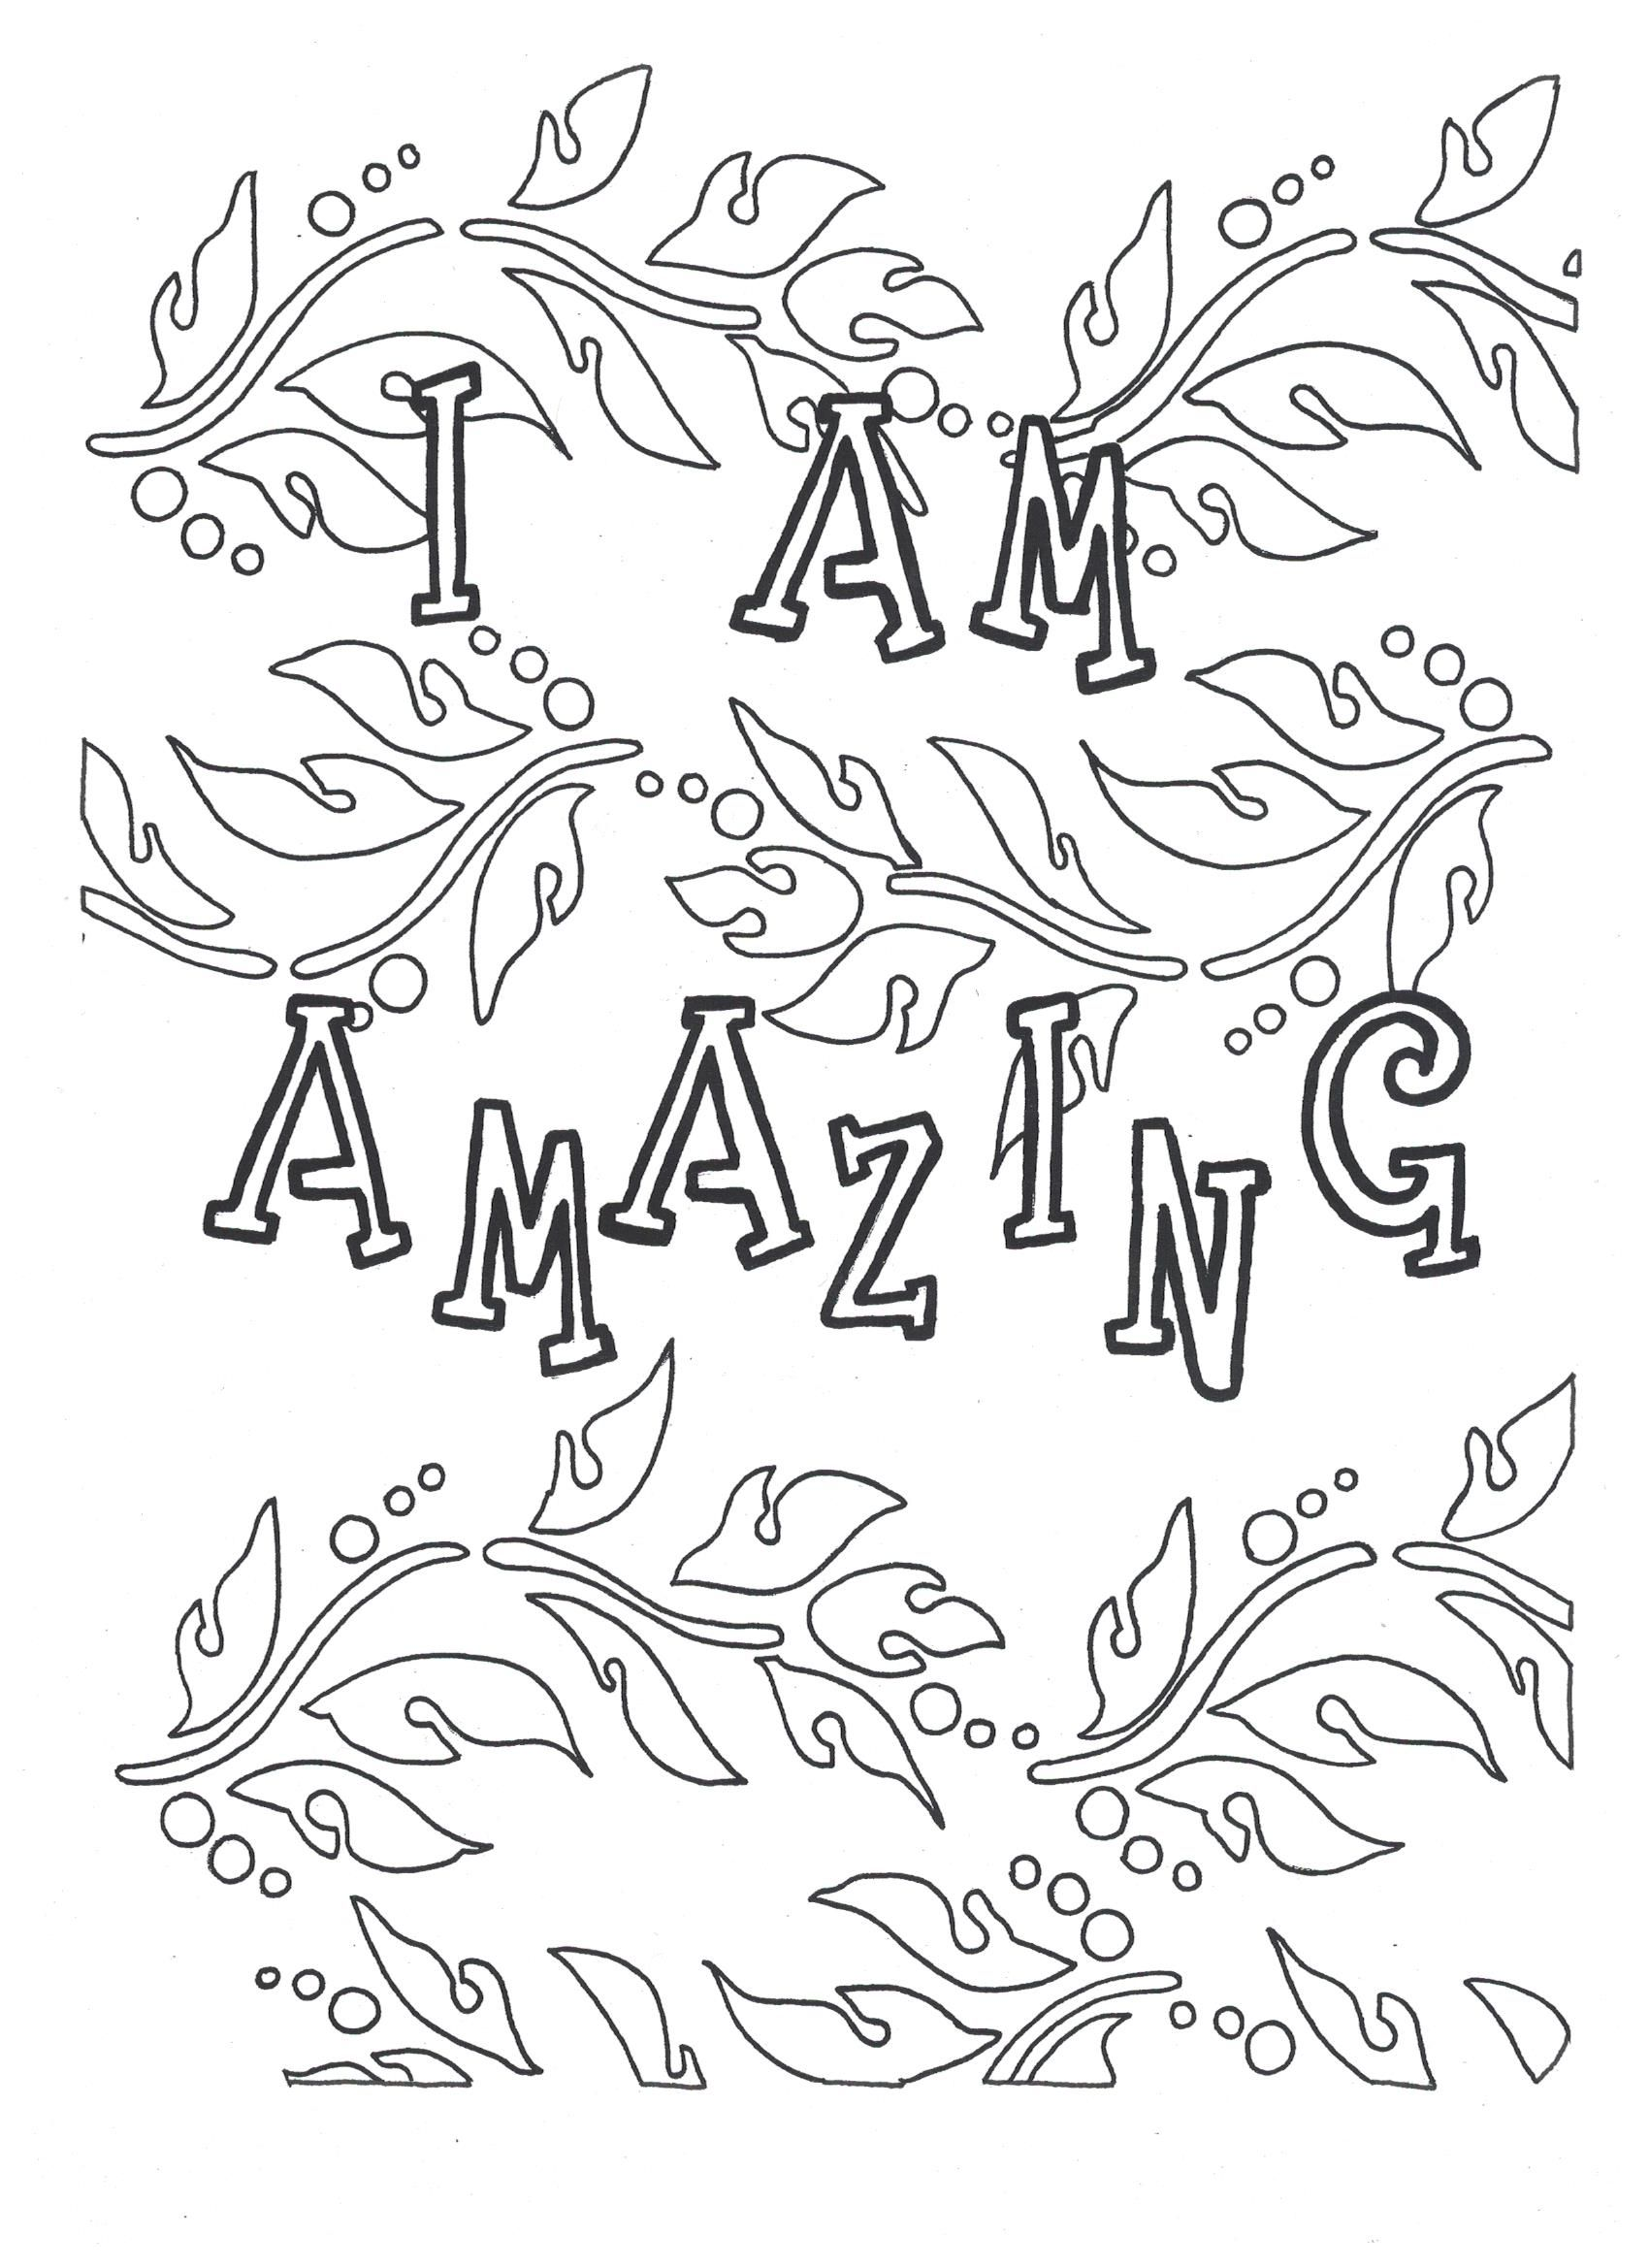 I am amazing coloring page SelfLove